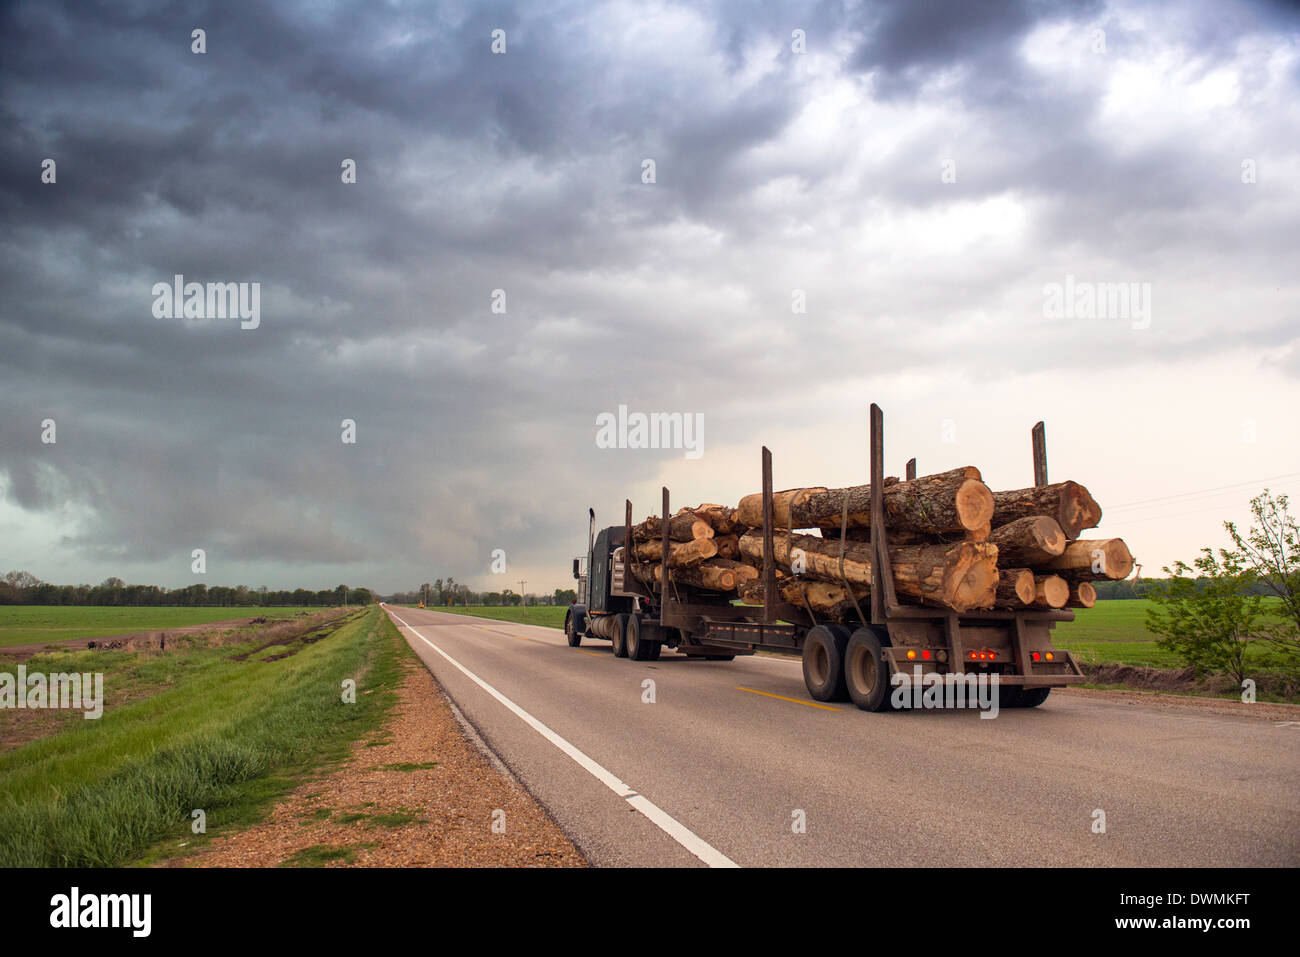 Logging truck in Mississippi driving into the heart of a thunderstorm with an extreme tornado watch, United States of America - Stock Image